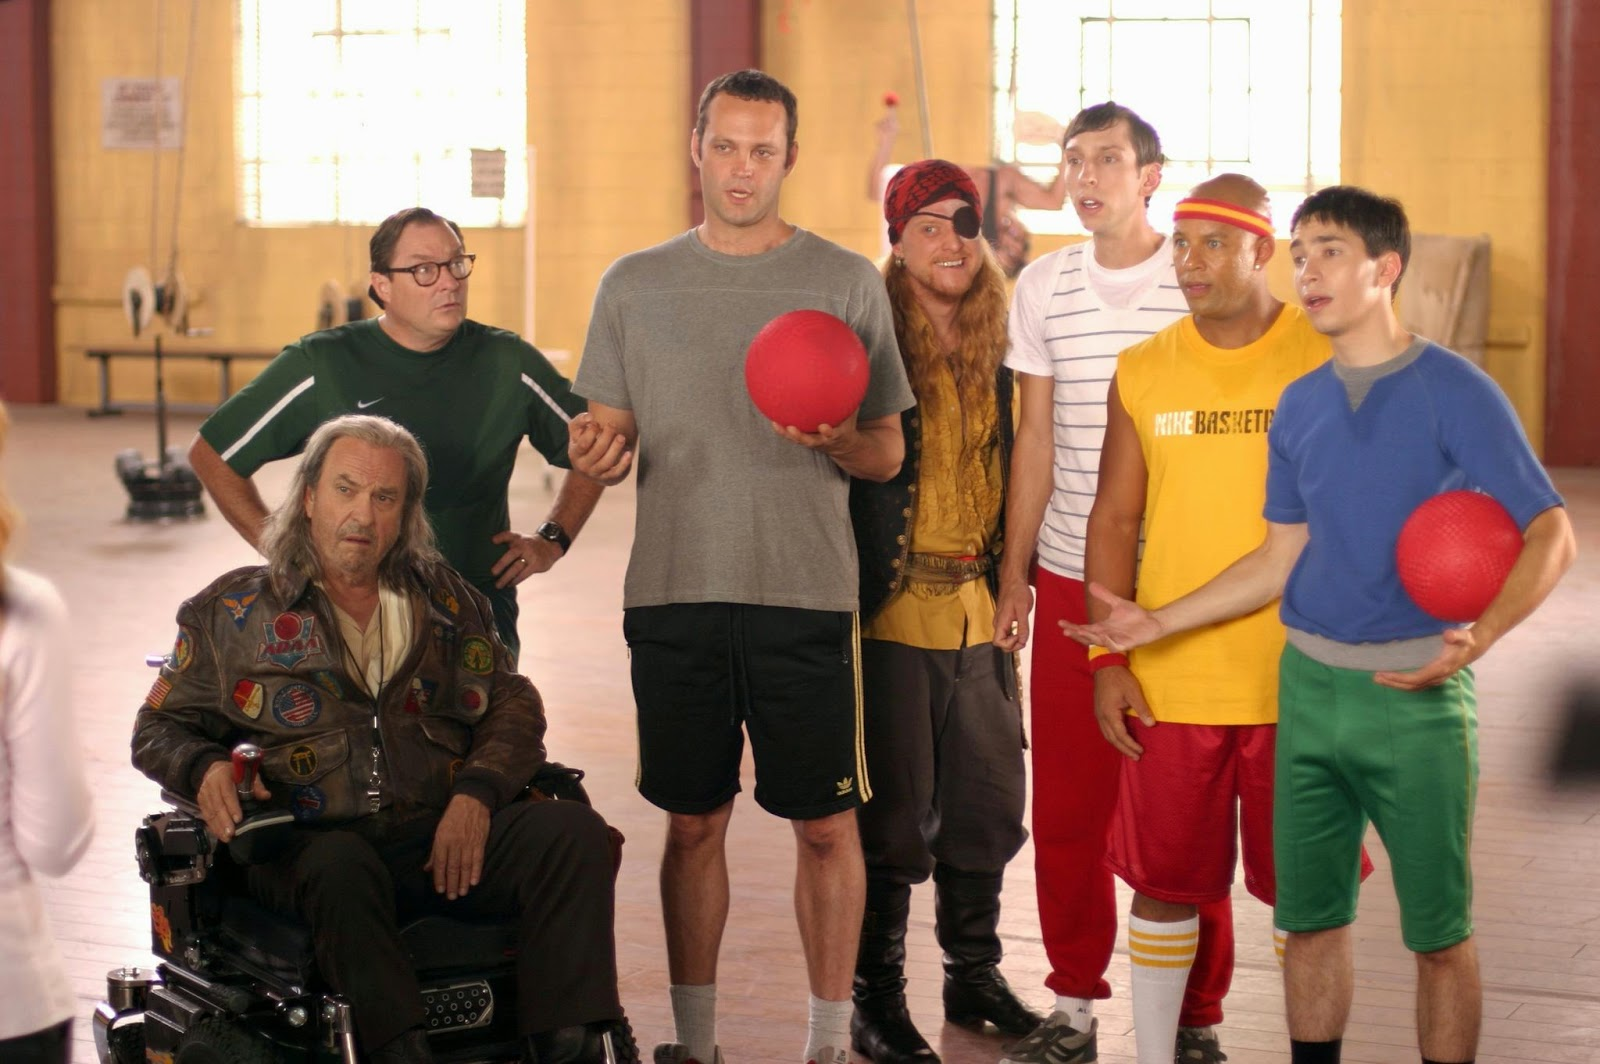 Vince Vaughn Dodgeball movie cast comedy 2004